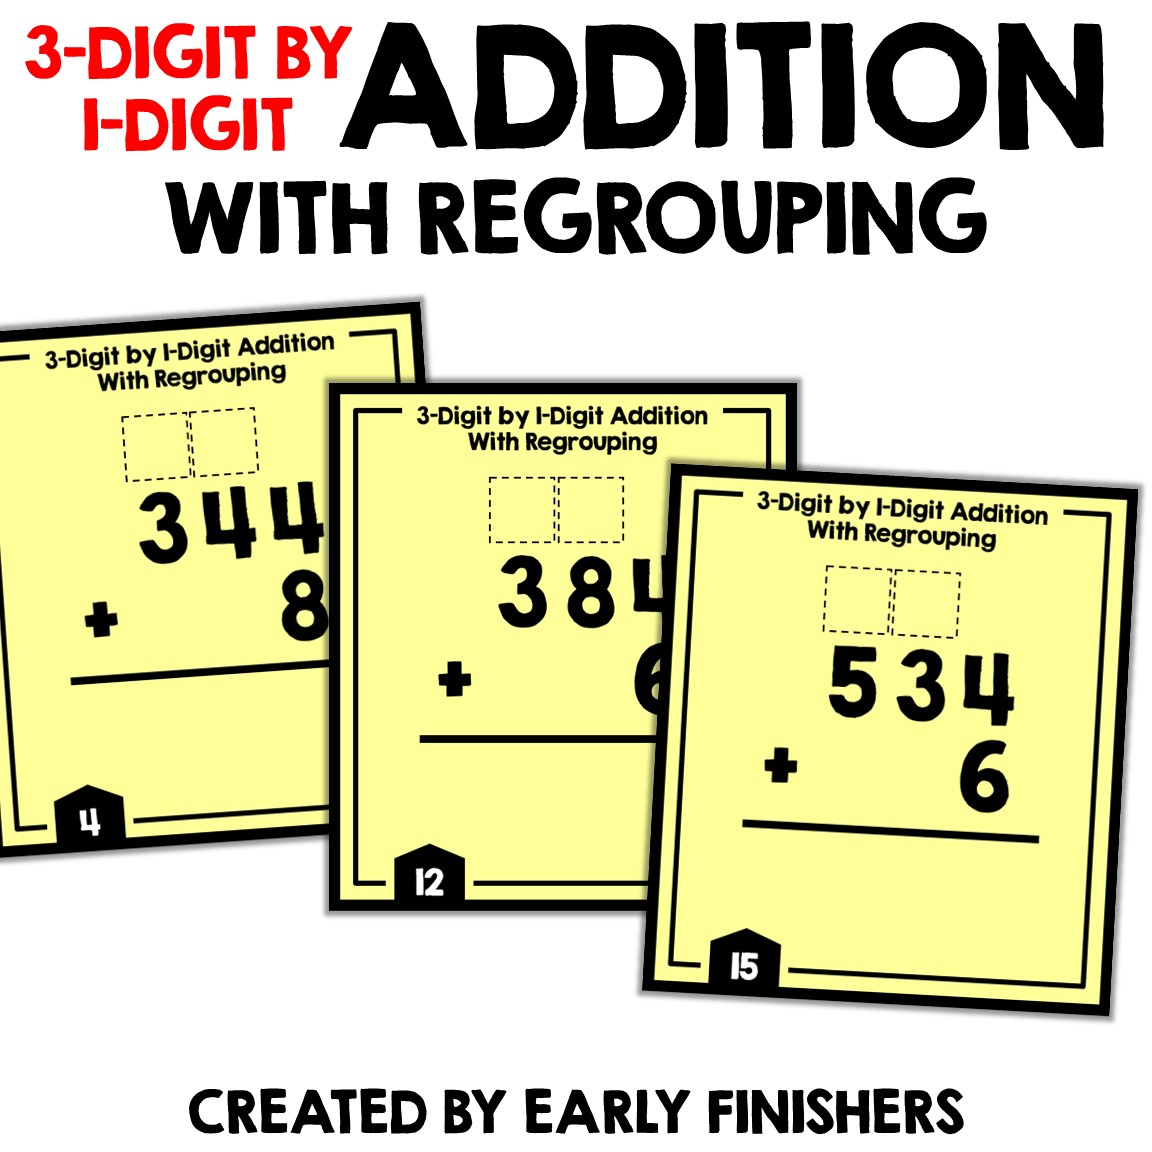 3 Digit by 1 Digit Addition With Regrouping